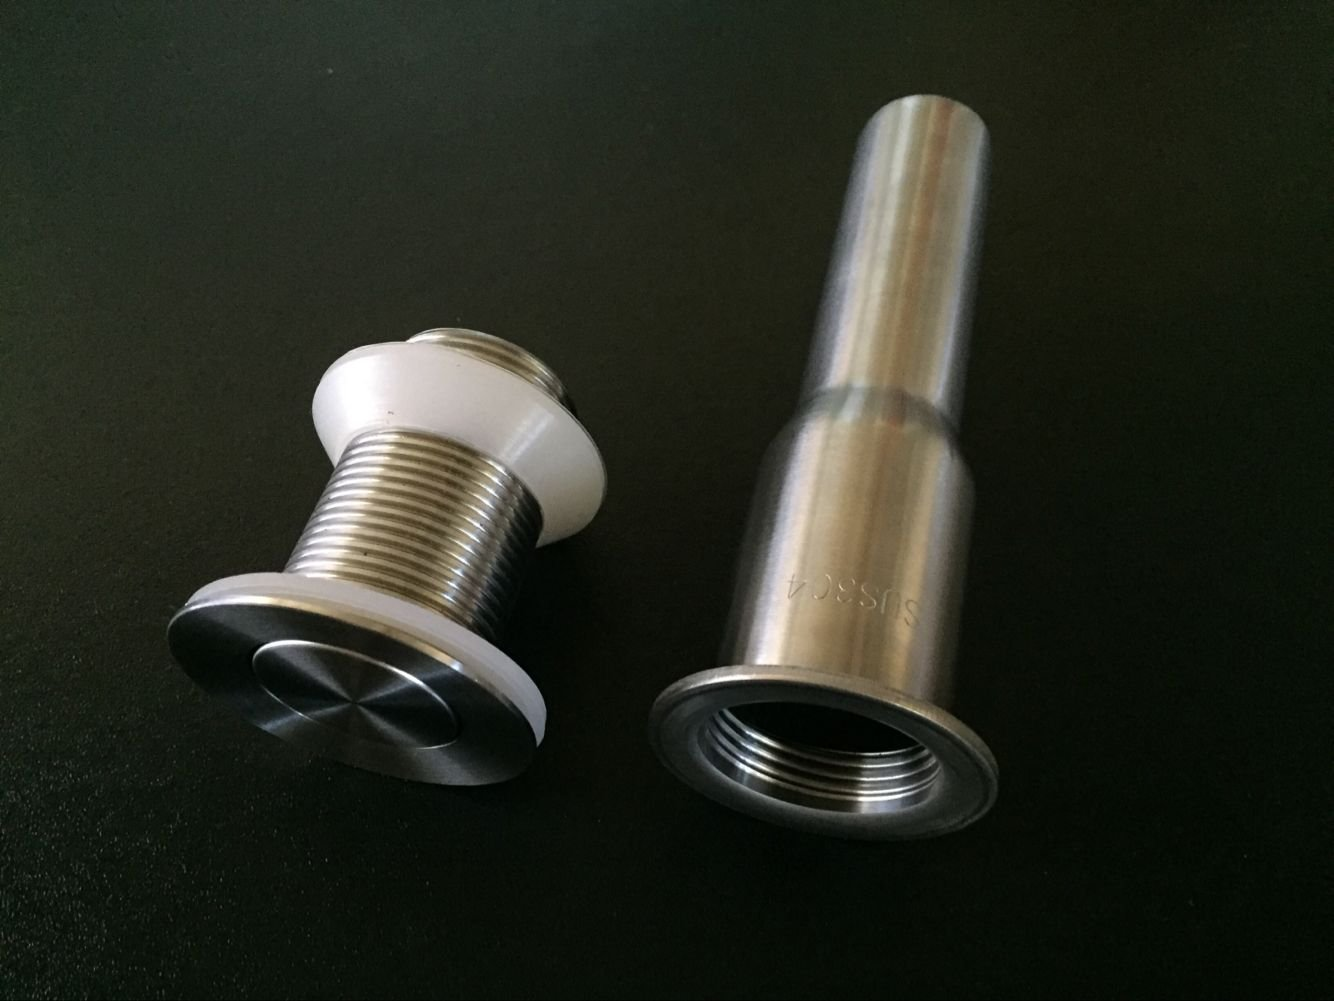 Stainless Steel Bathroom Sink Flip Drain Stopper Without Overflow ...